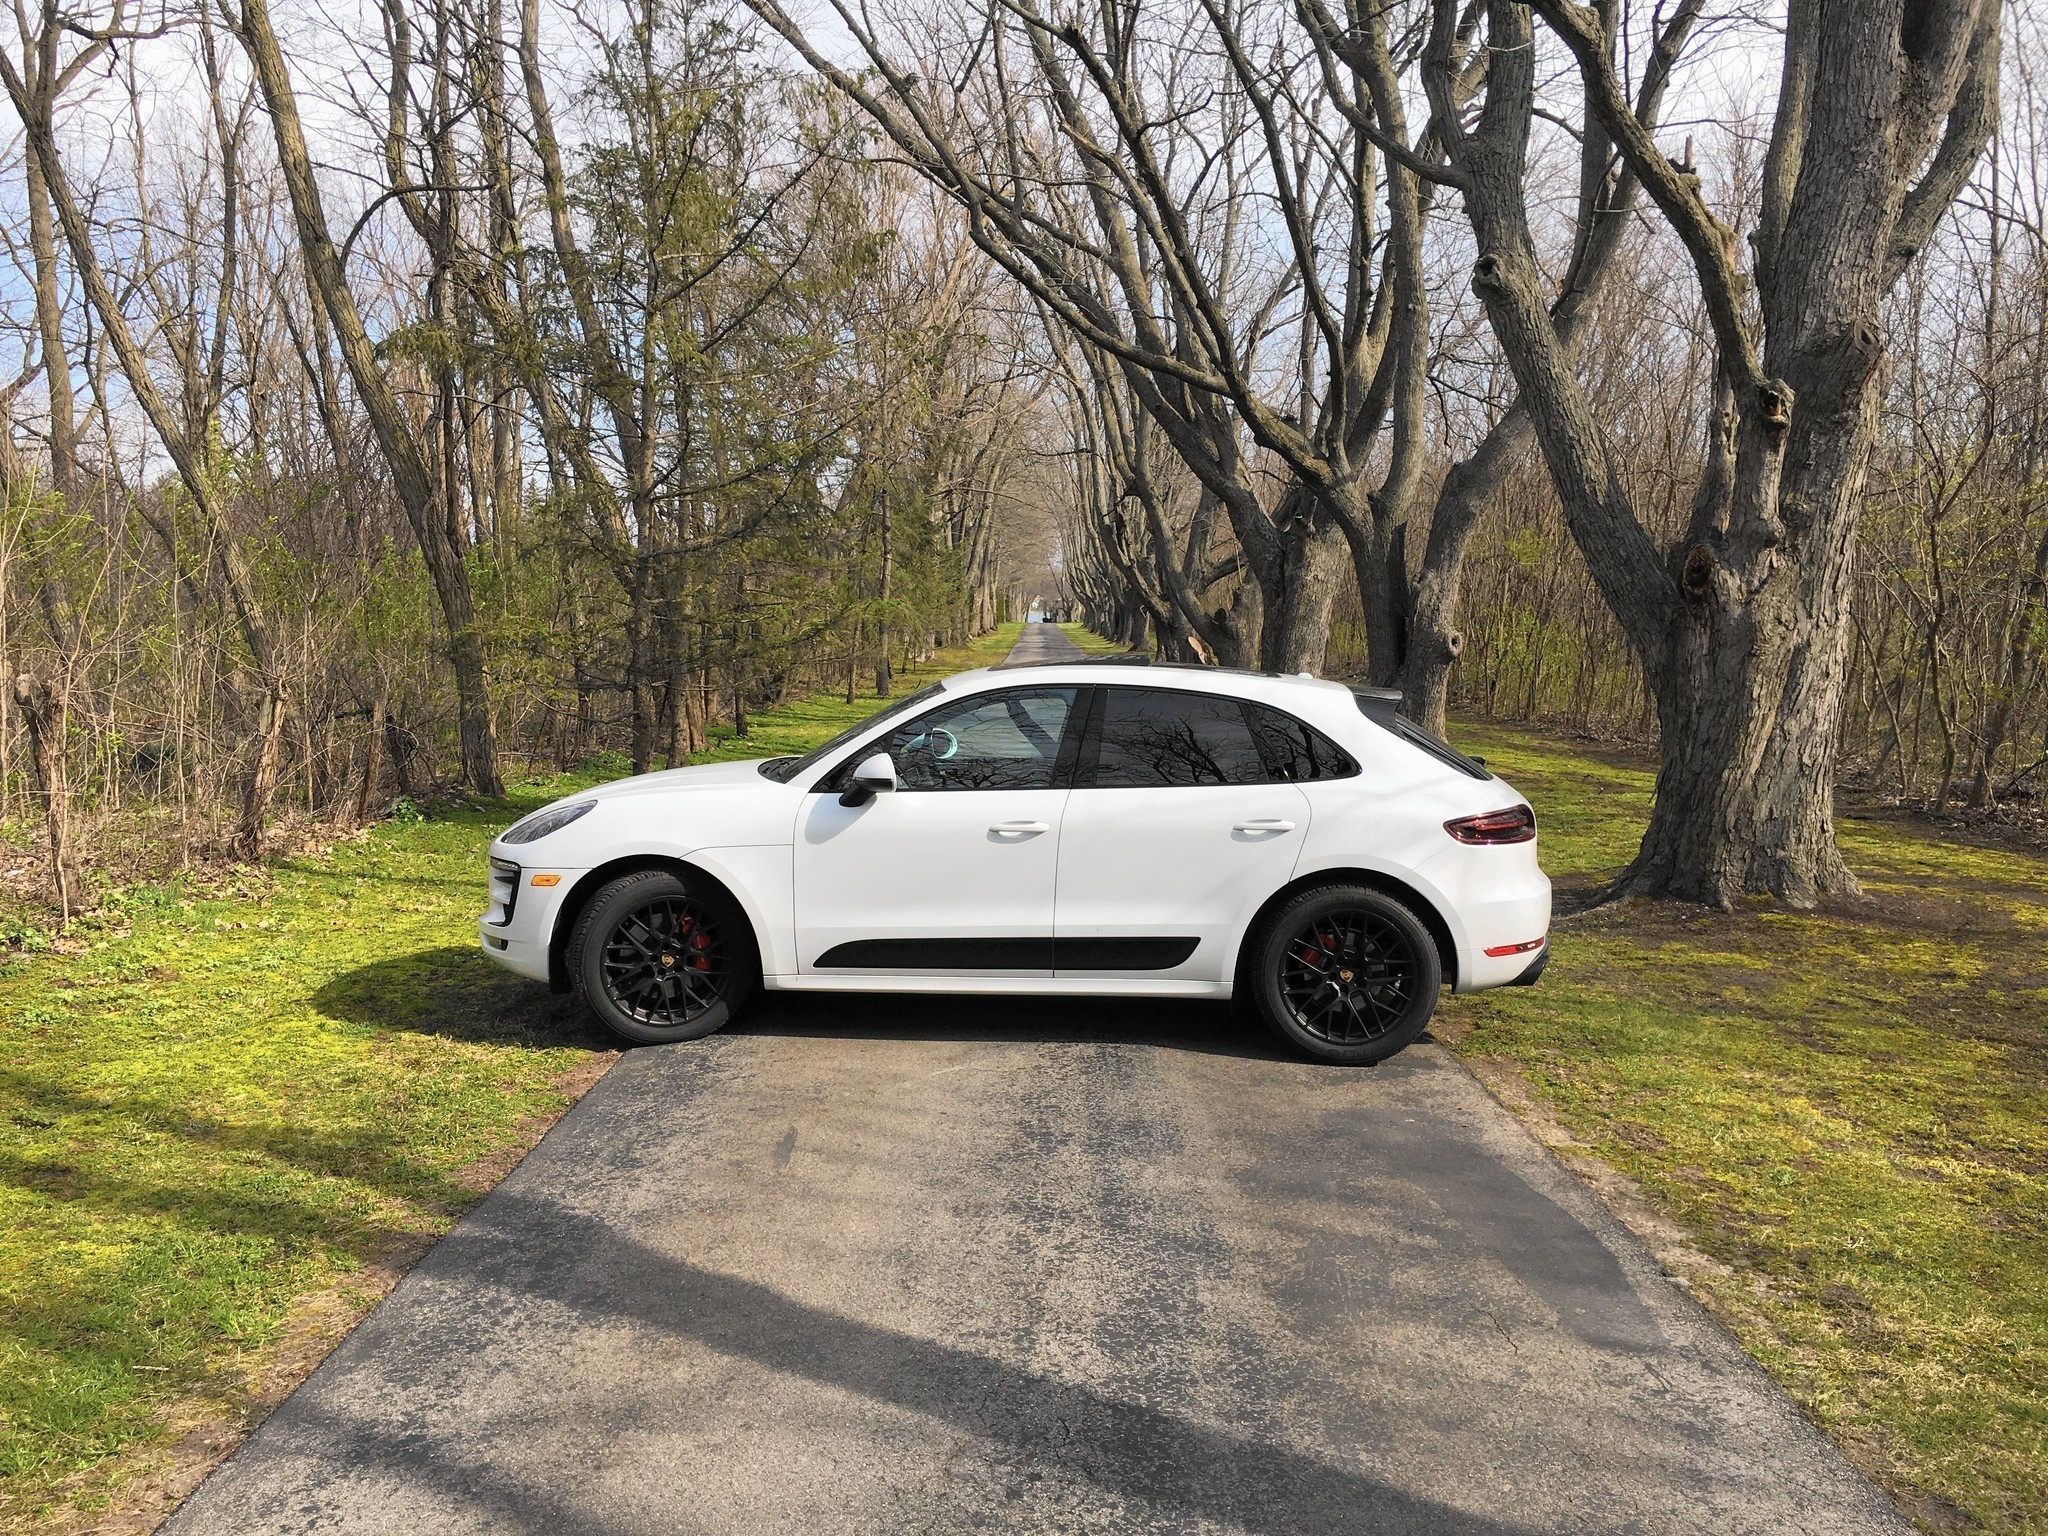 Porsche Macan Gts Is A Performance Crossover Compromise